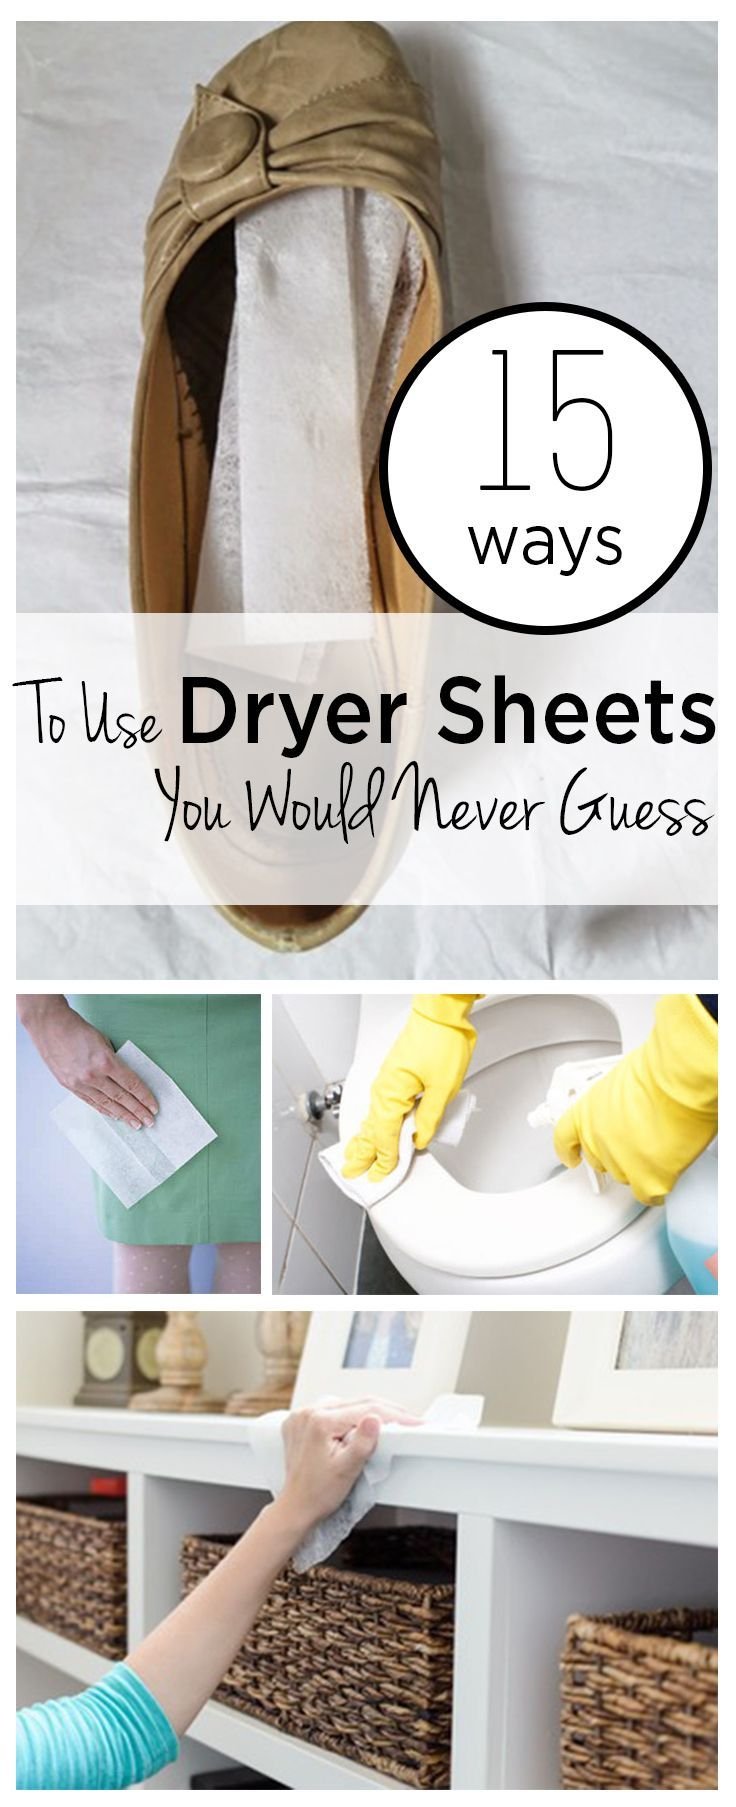 17 best images about good house keeping tips not just cleaning on pinterest toilets washers. Black Bedroom Furniture Sets. Home Design Ideas